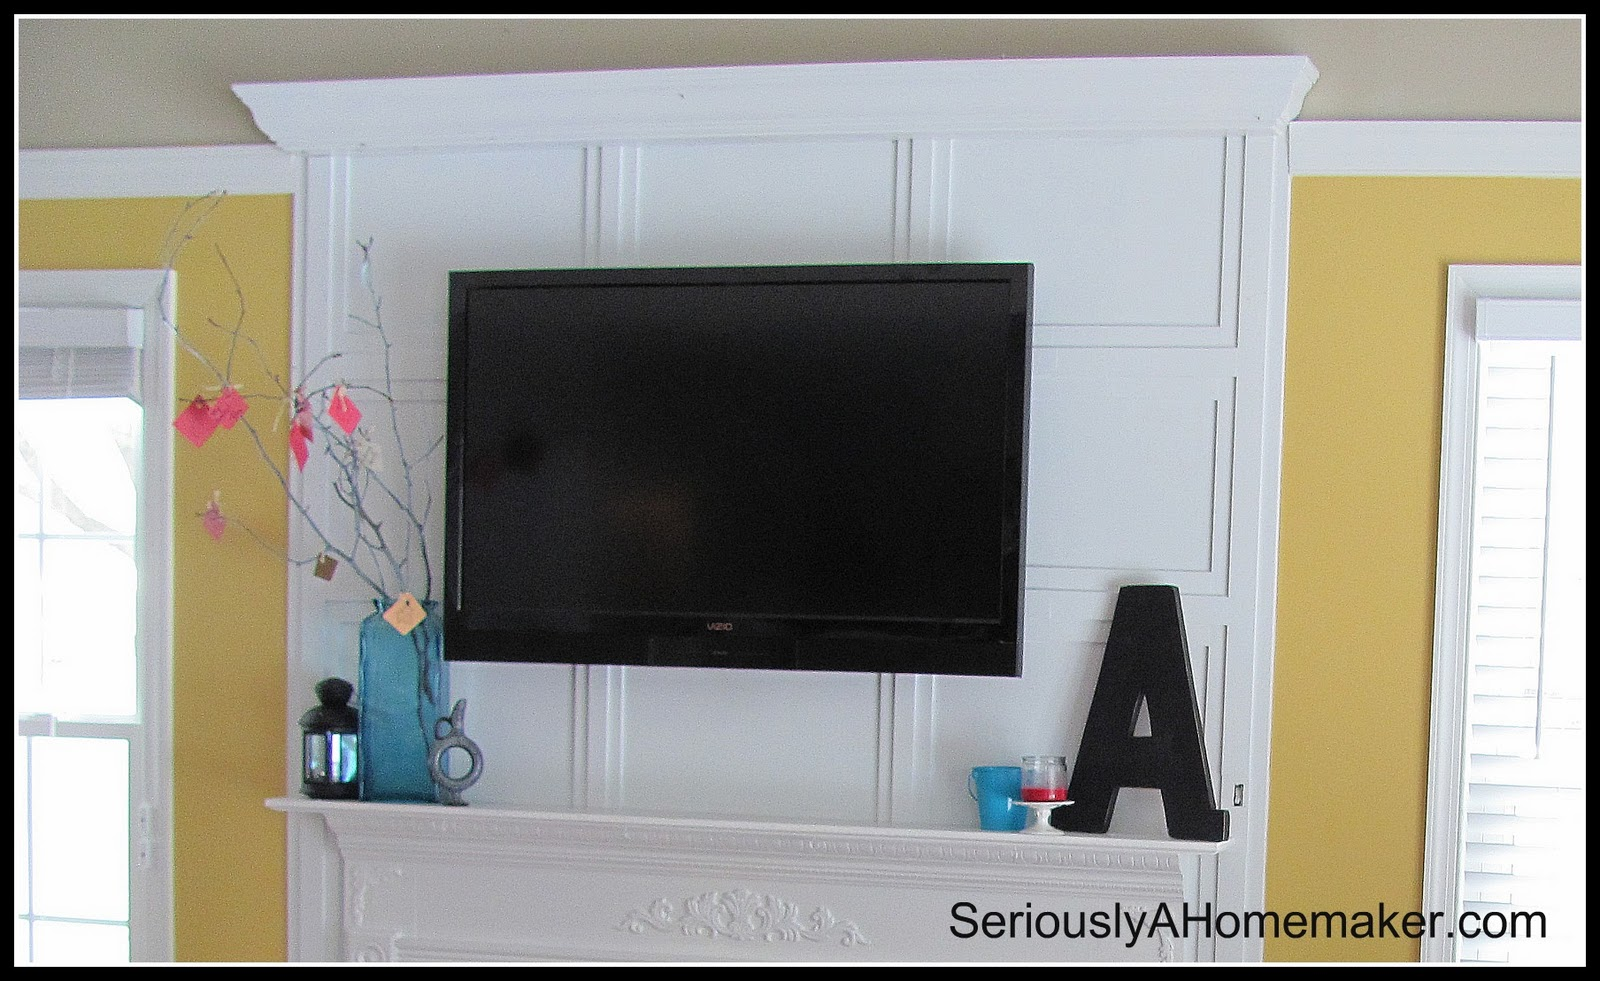 Remodelaholic 95 ways to hide or decorate around the tv for How to hide electrical cords on wall